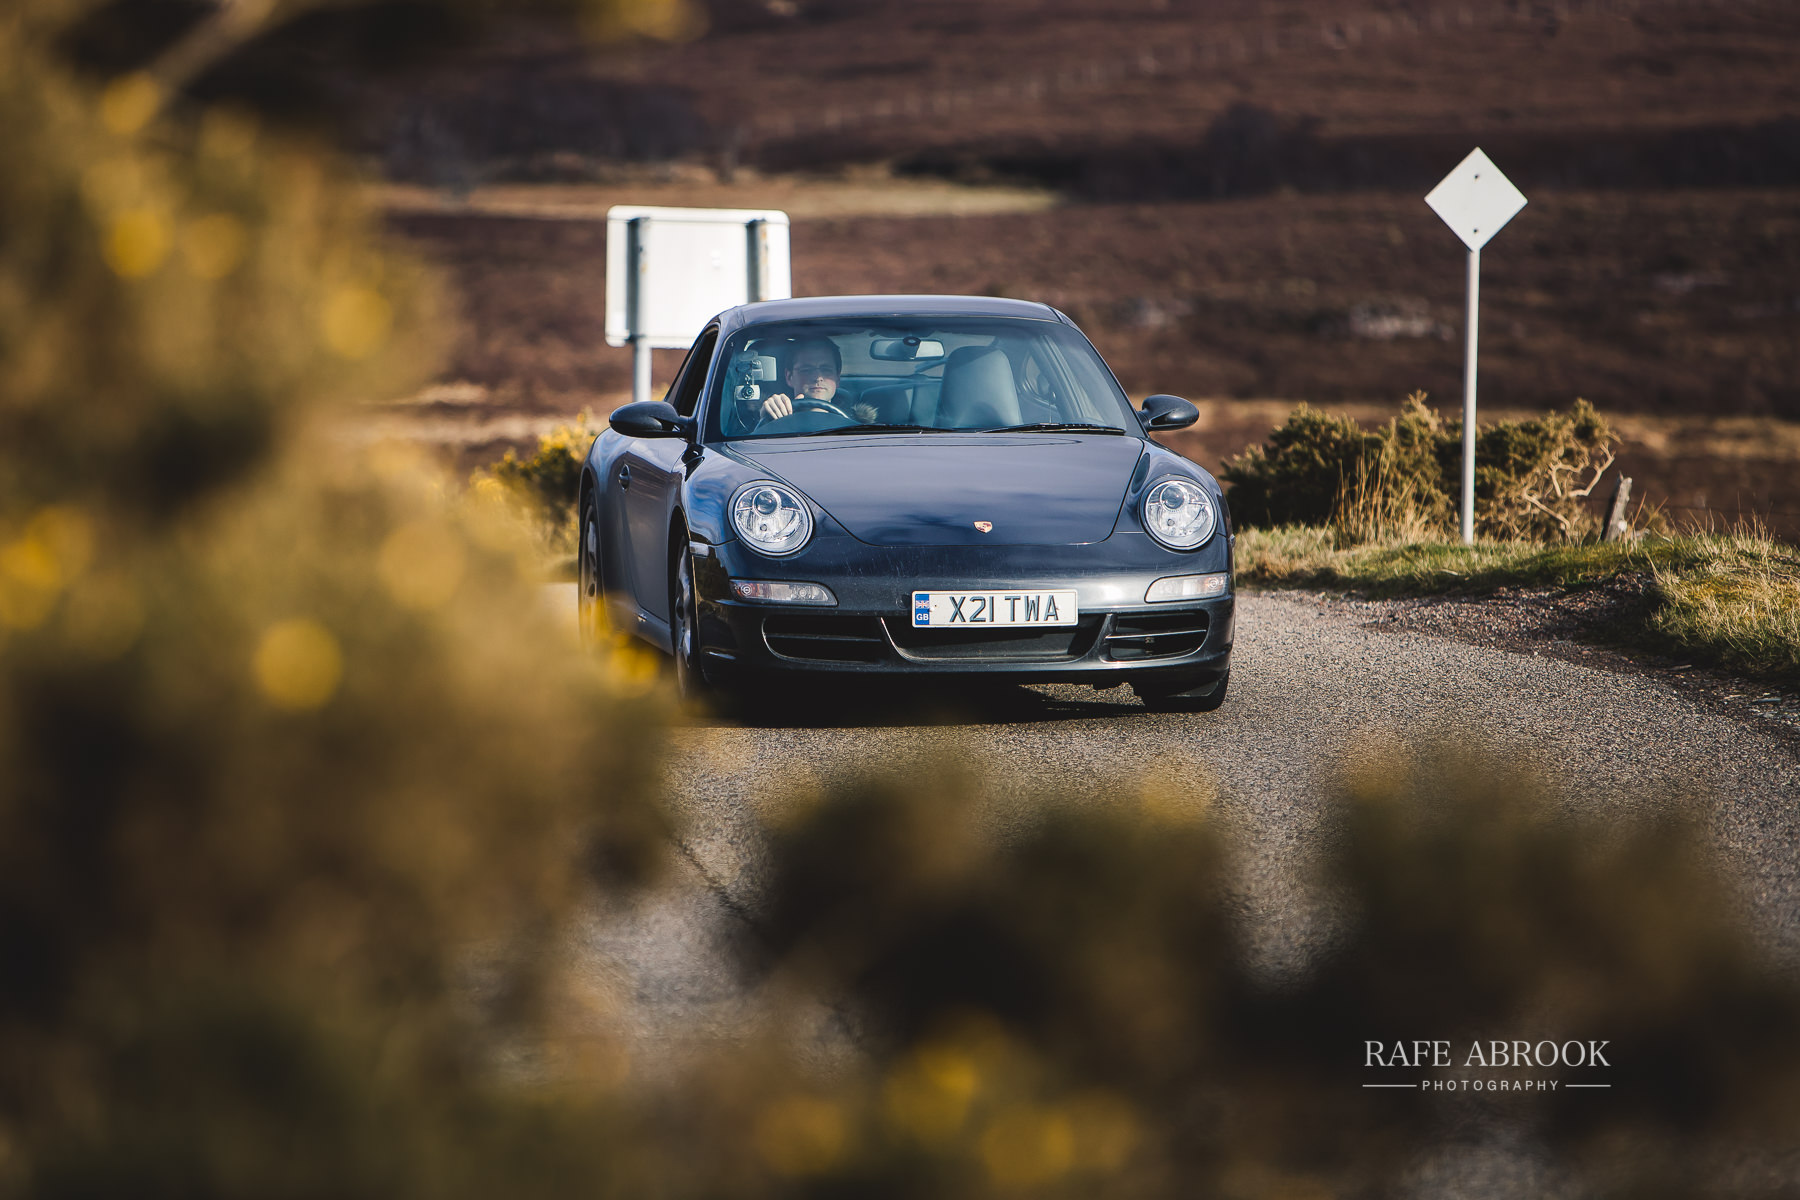 north coast 500 scotland porsche cayman gt4 golf r estate rafe abrook photography-1256.jpg